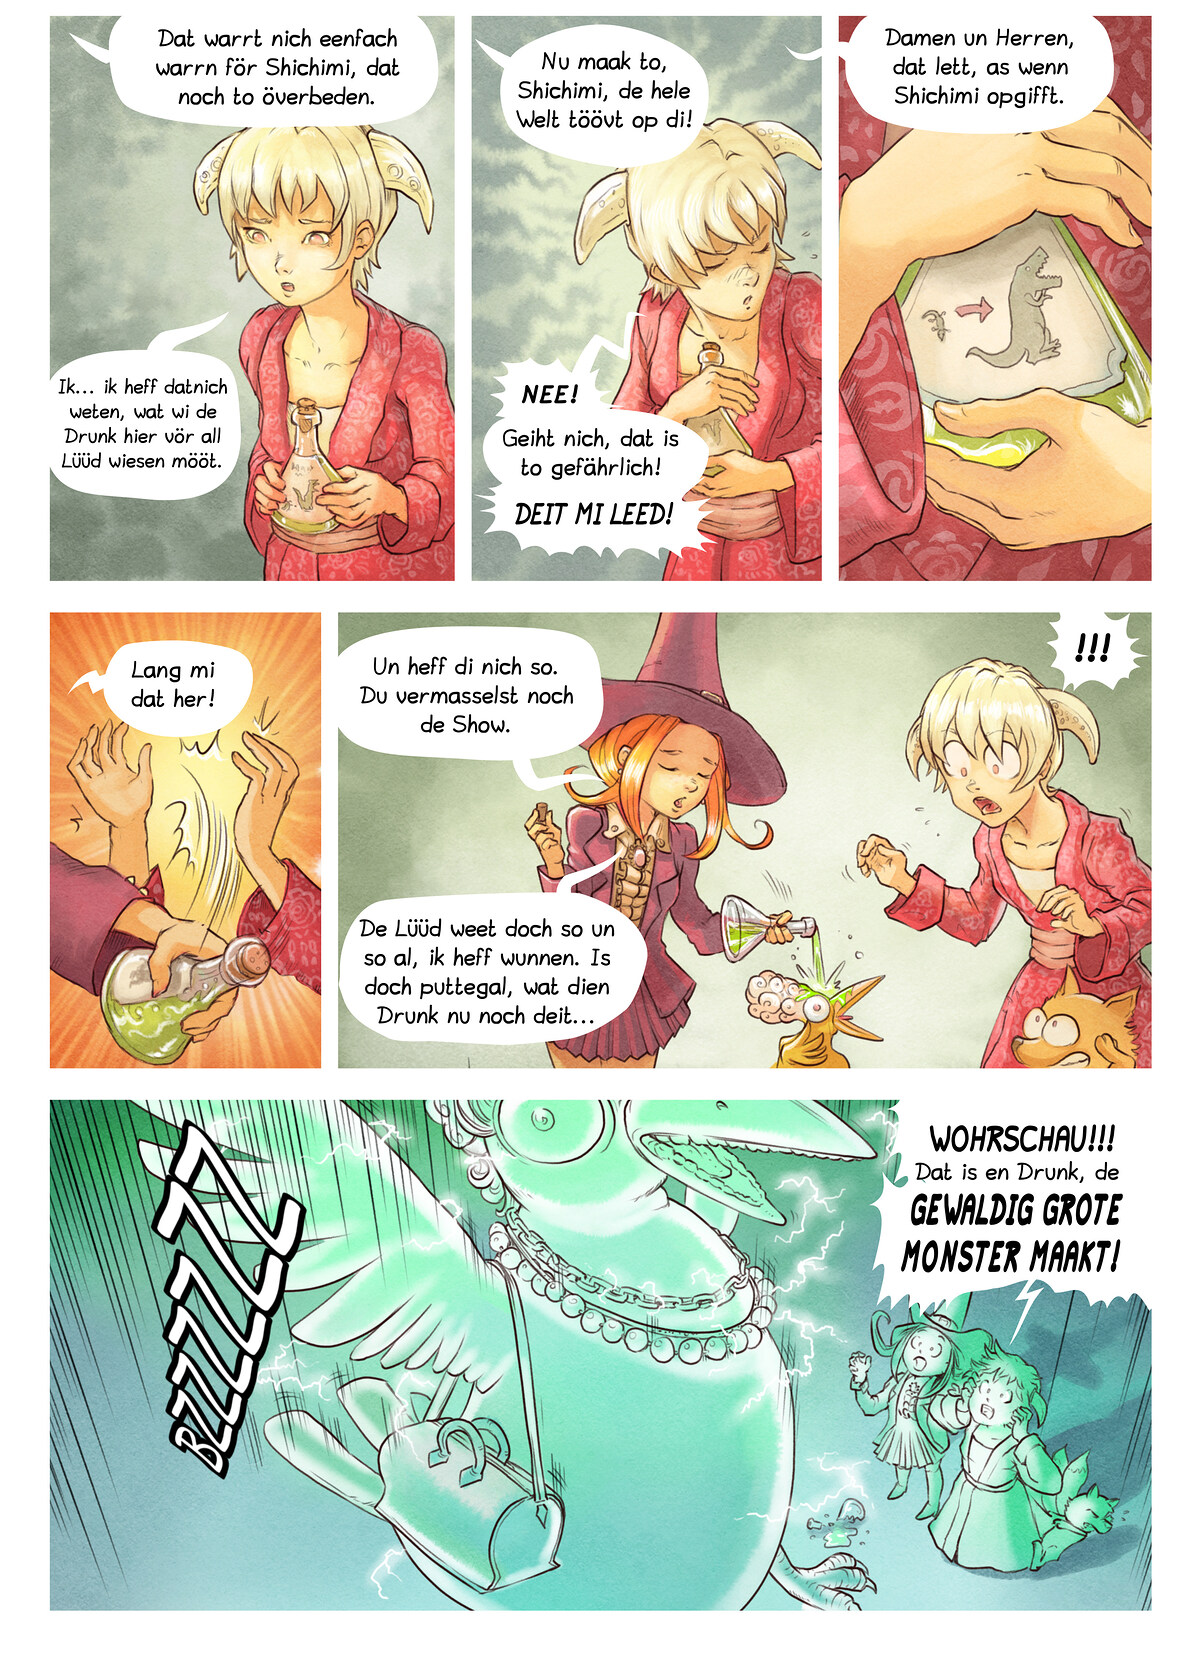 A webcomic page of Pepper&Carrot, Folg 6 [ns], Siet 6